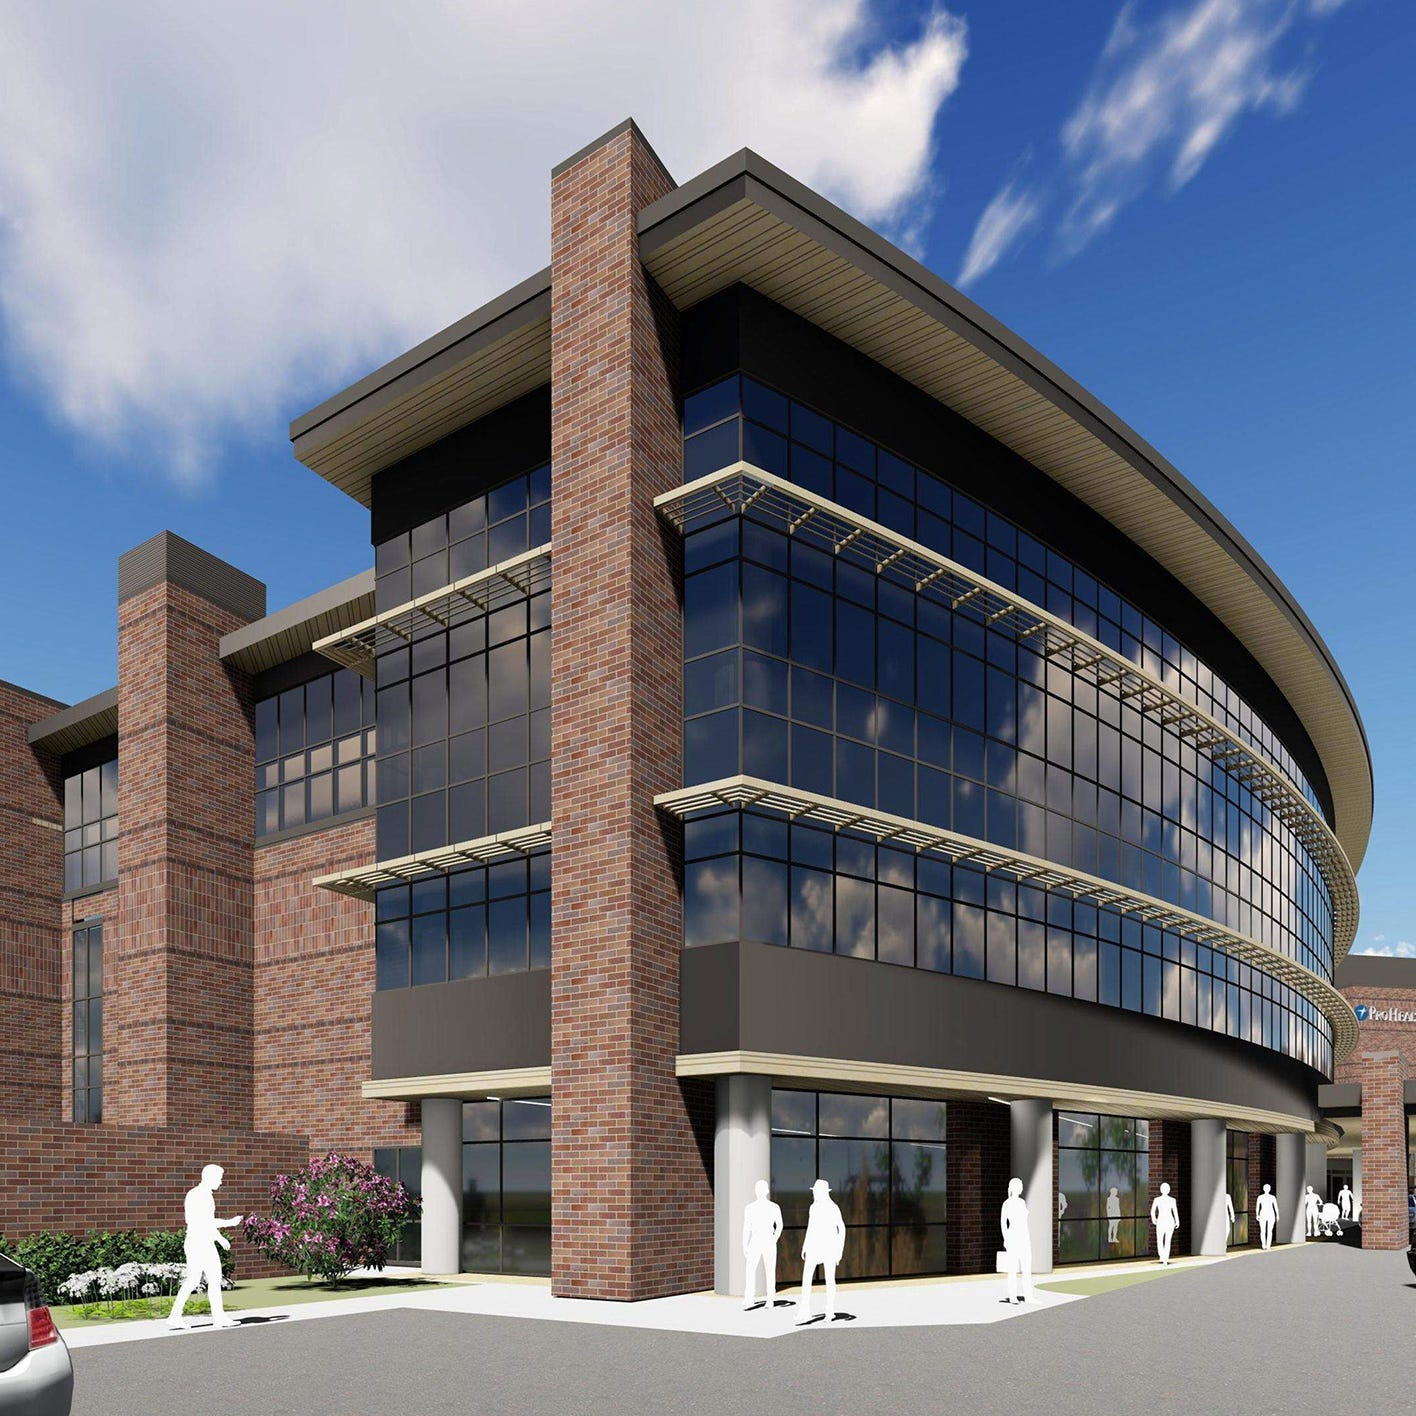 ProHealth Care unveils designs for new $55 million hospital in Mukwonago